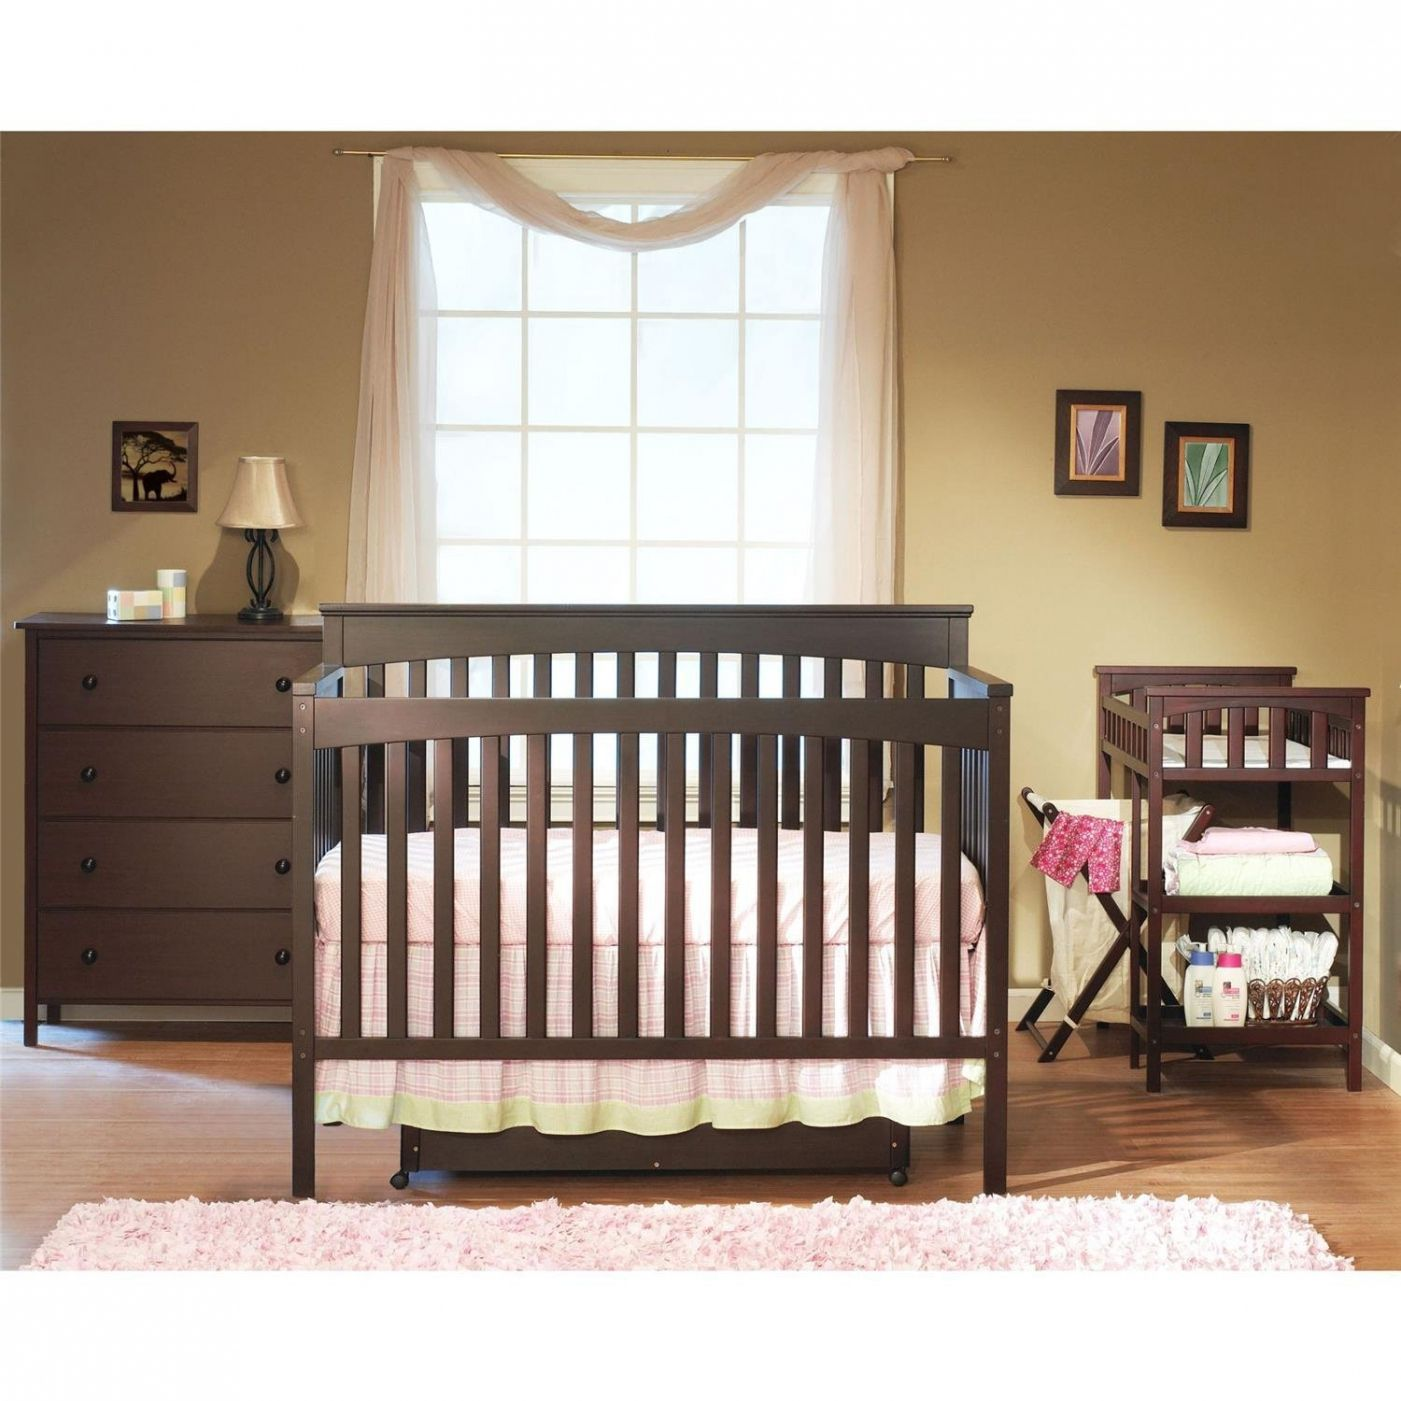 Sears Baby Furniture Dressers - Best Interior Paint Colors Check ...